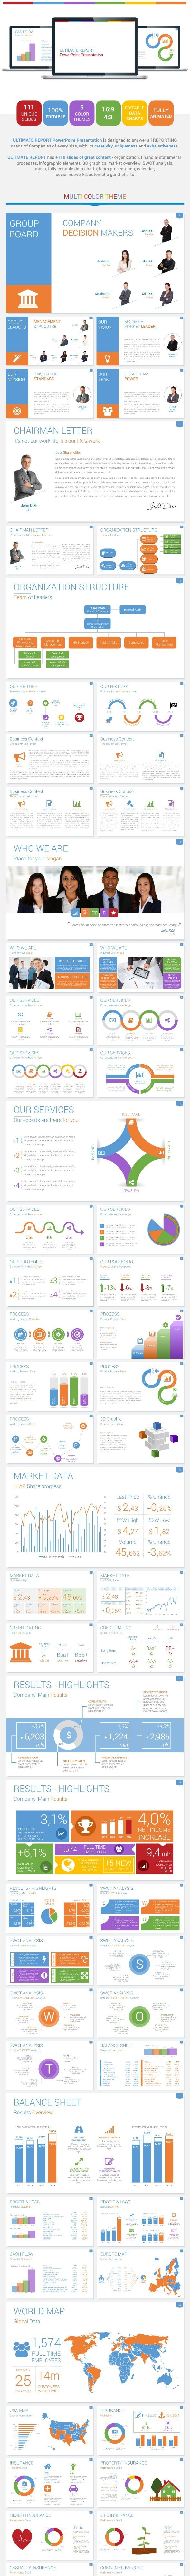 ULTIMATE REPORT PowerPoint Presentation - Business PowerPoint Templates